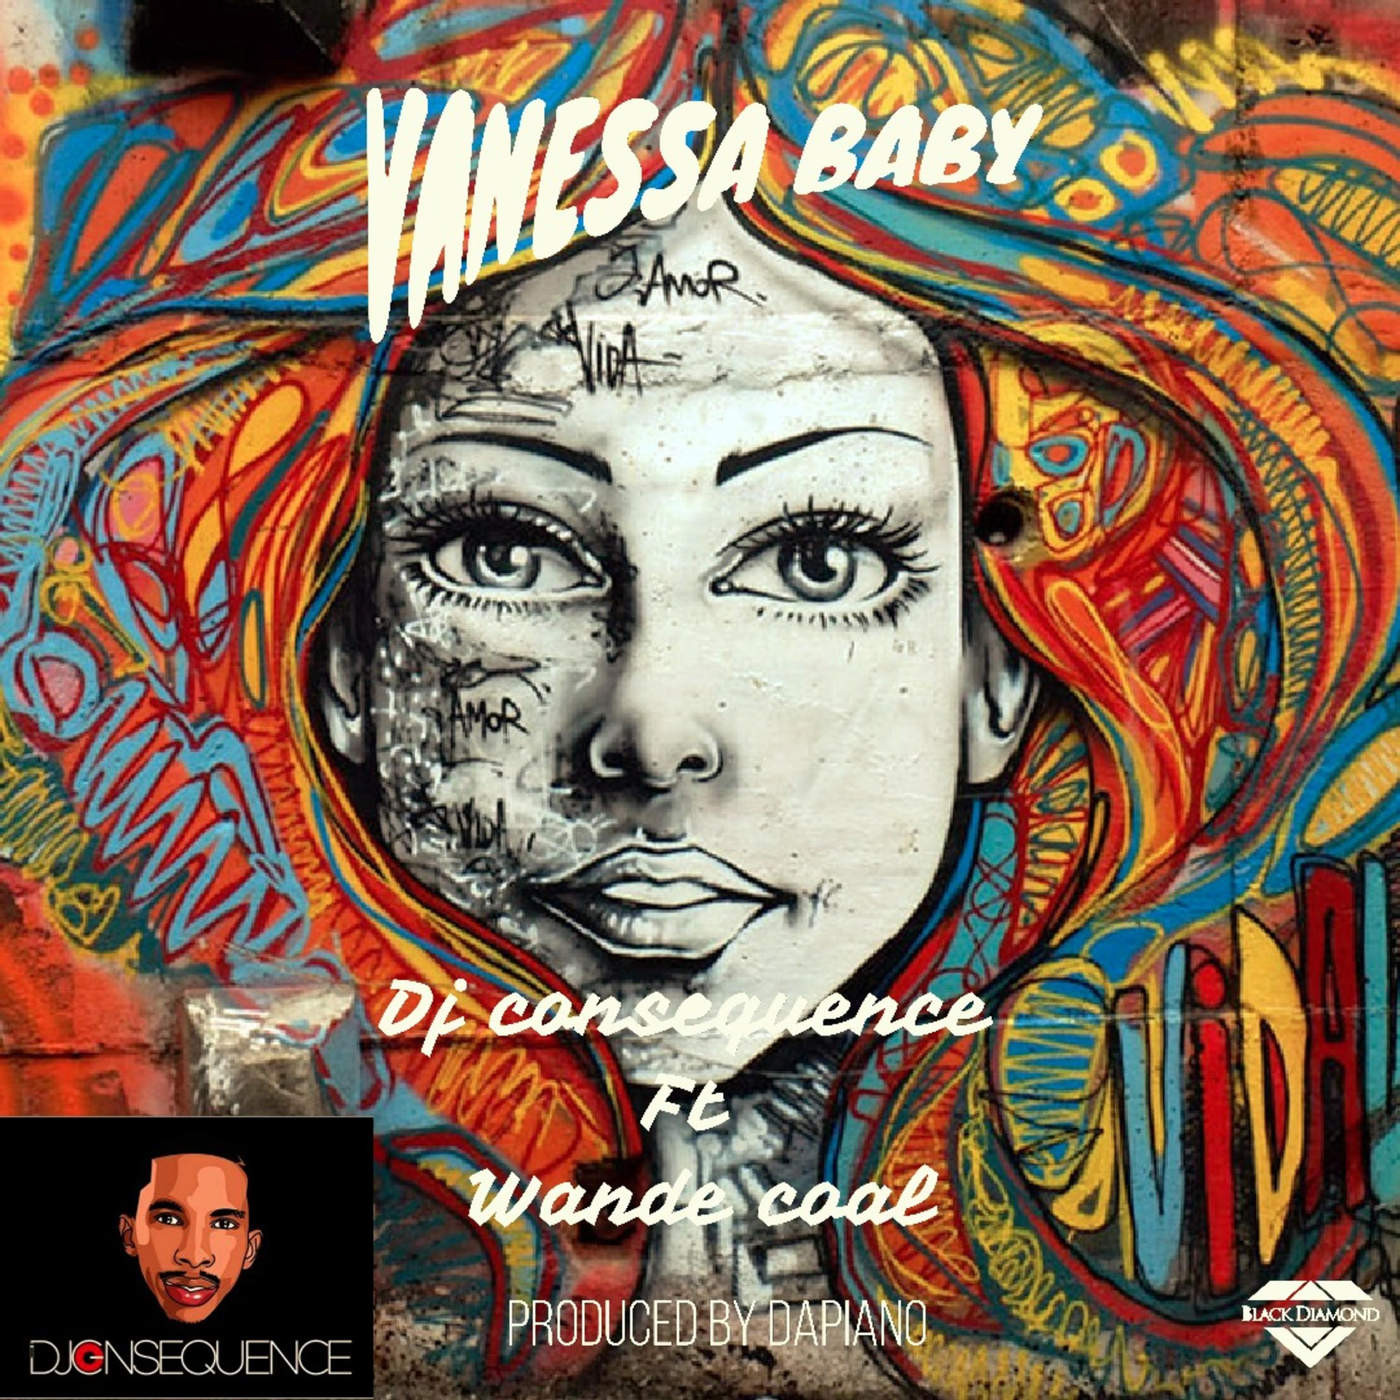 DJ Consequence - Vanessa Baby [ft. Wande Coal]